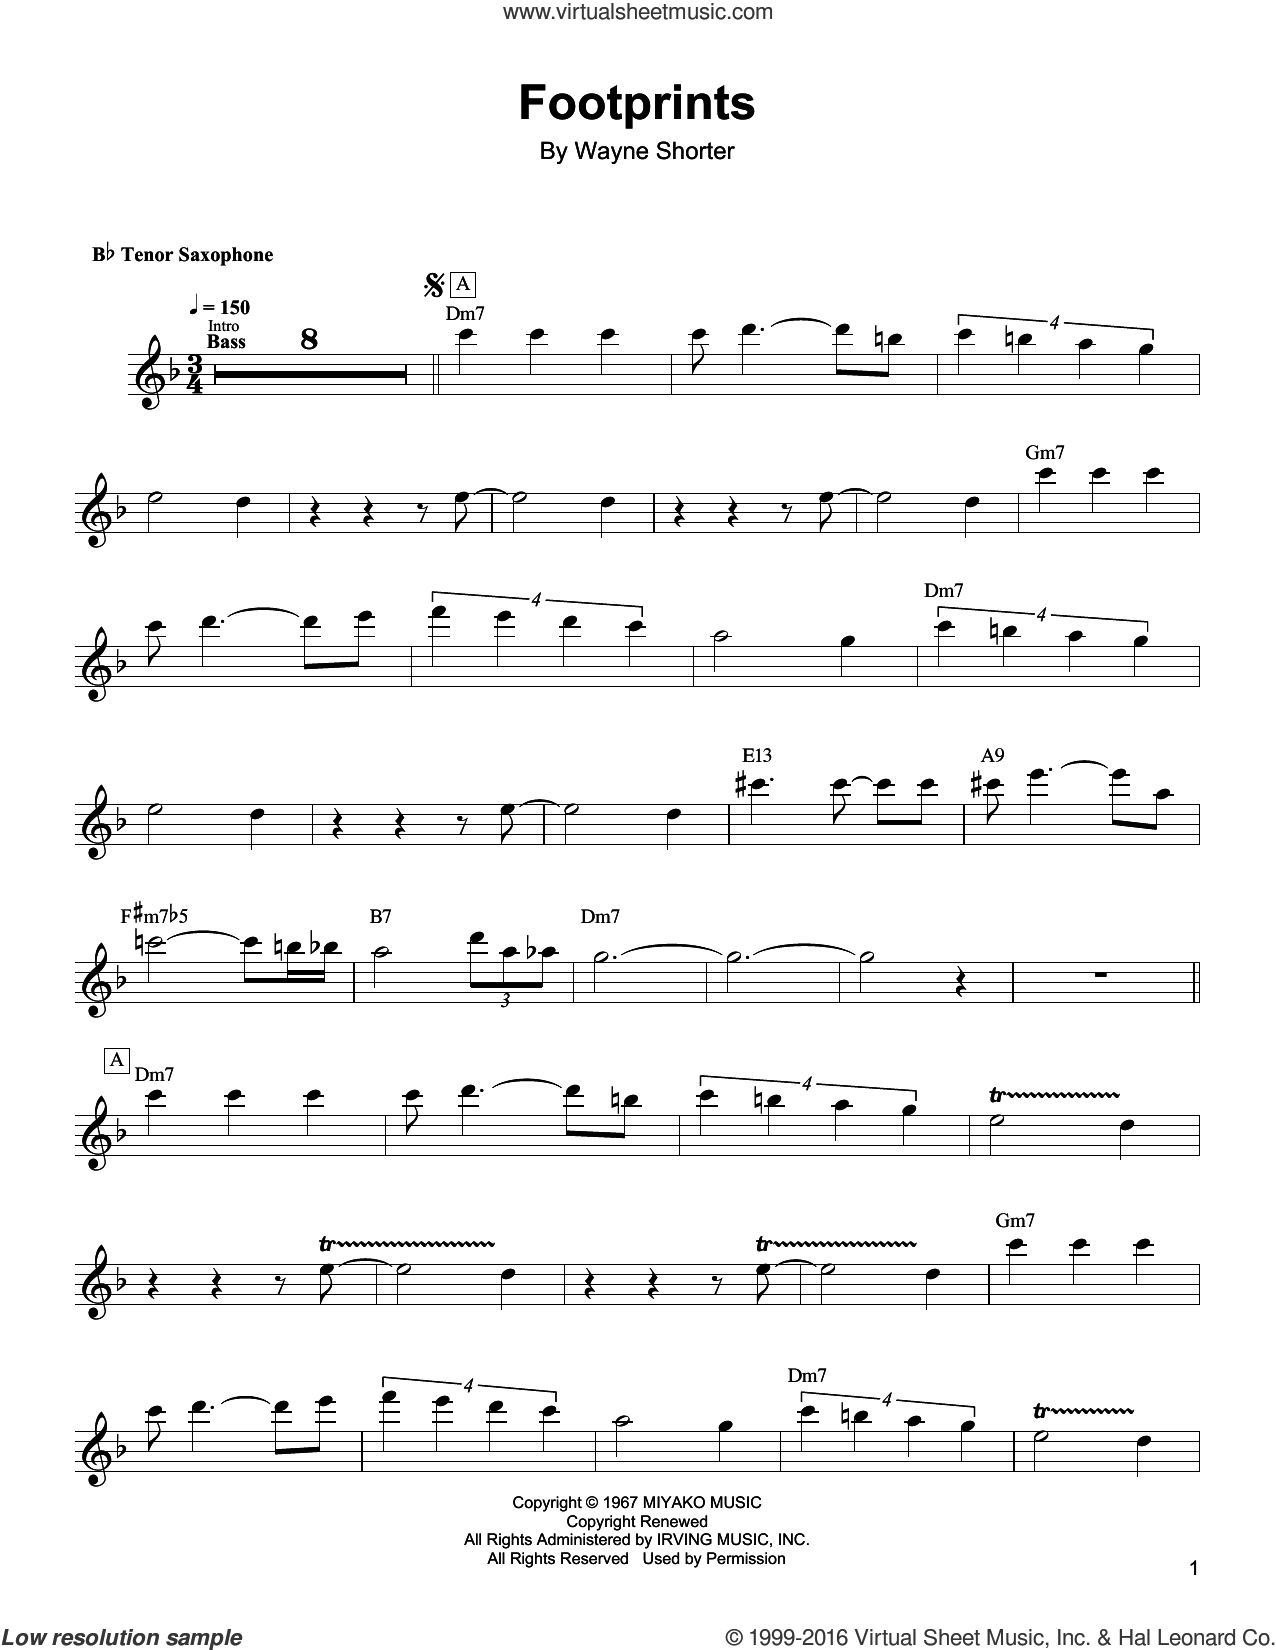 Footprints sheet music for tenor saxophone solo (transcription) by Wayne Shorter